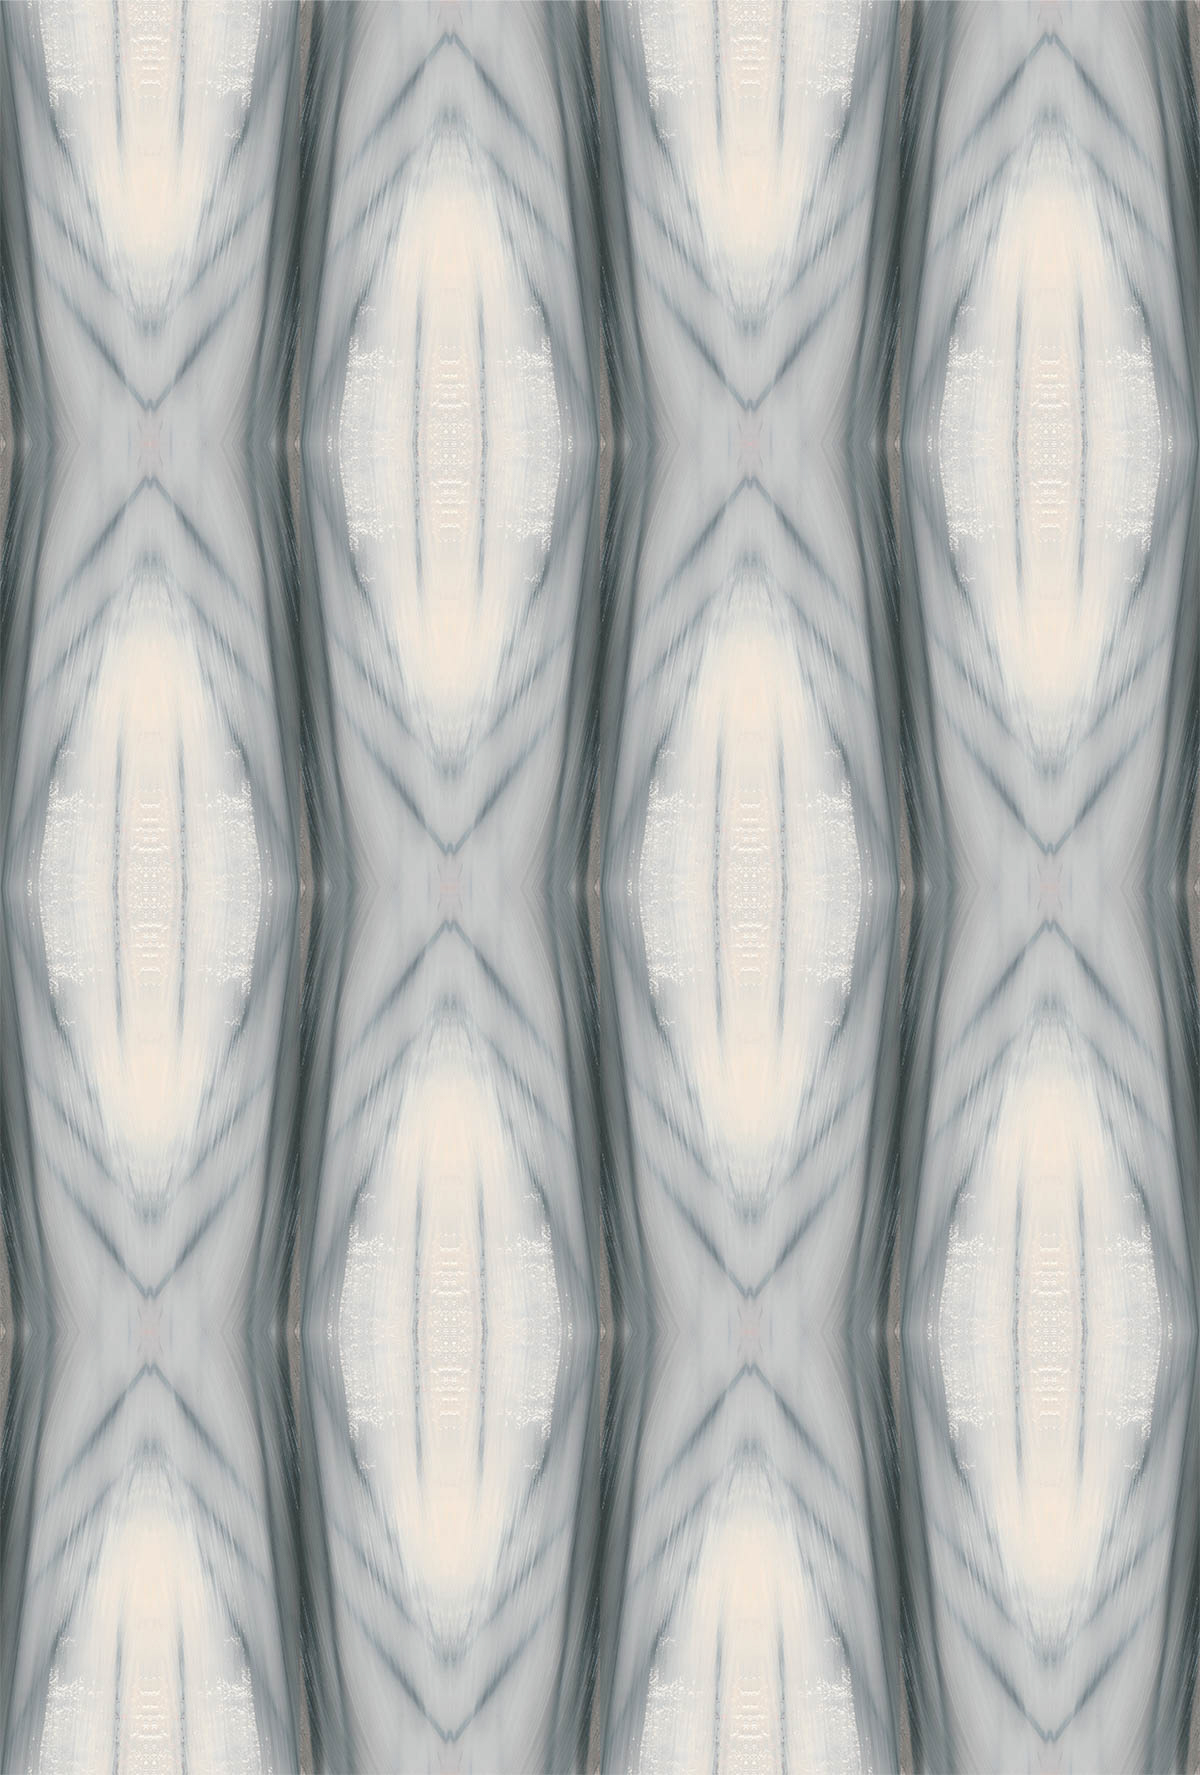 gray and white abstract